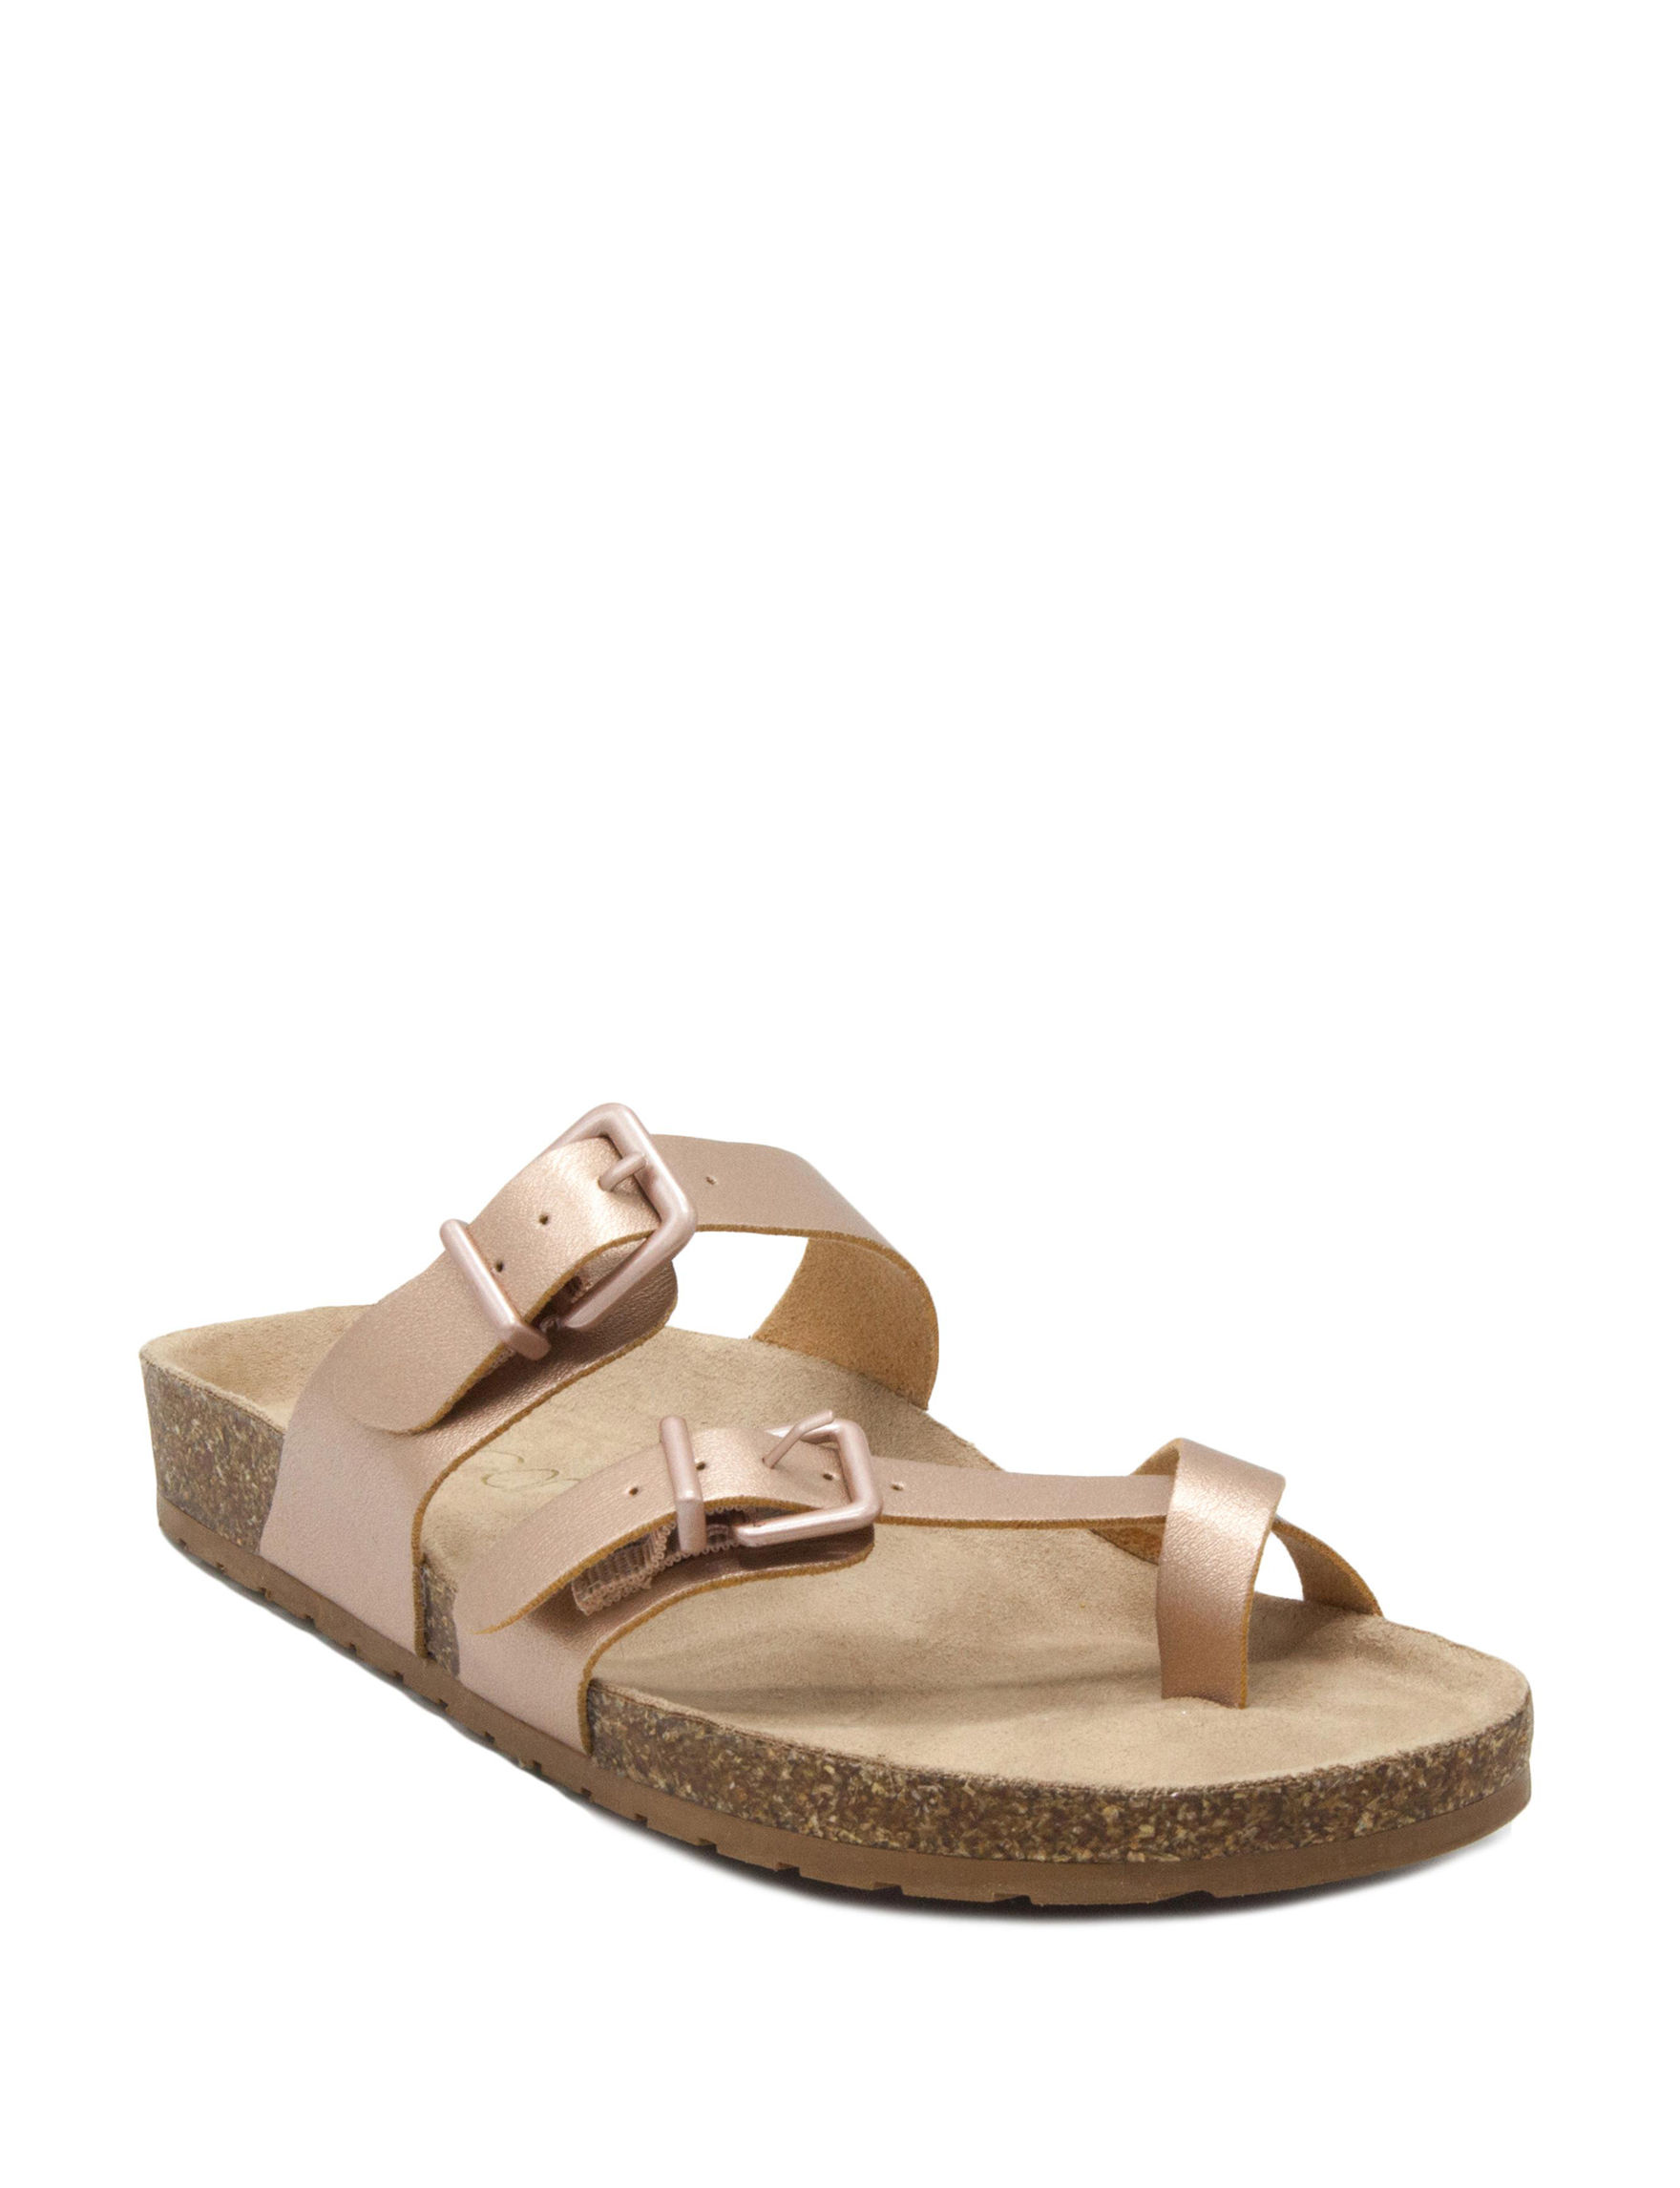 Sugar Rose Gold Flat Sandals Slide Sandals